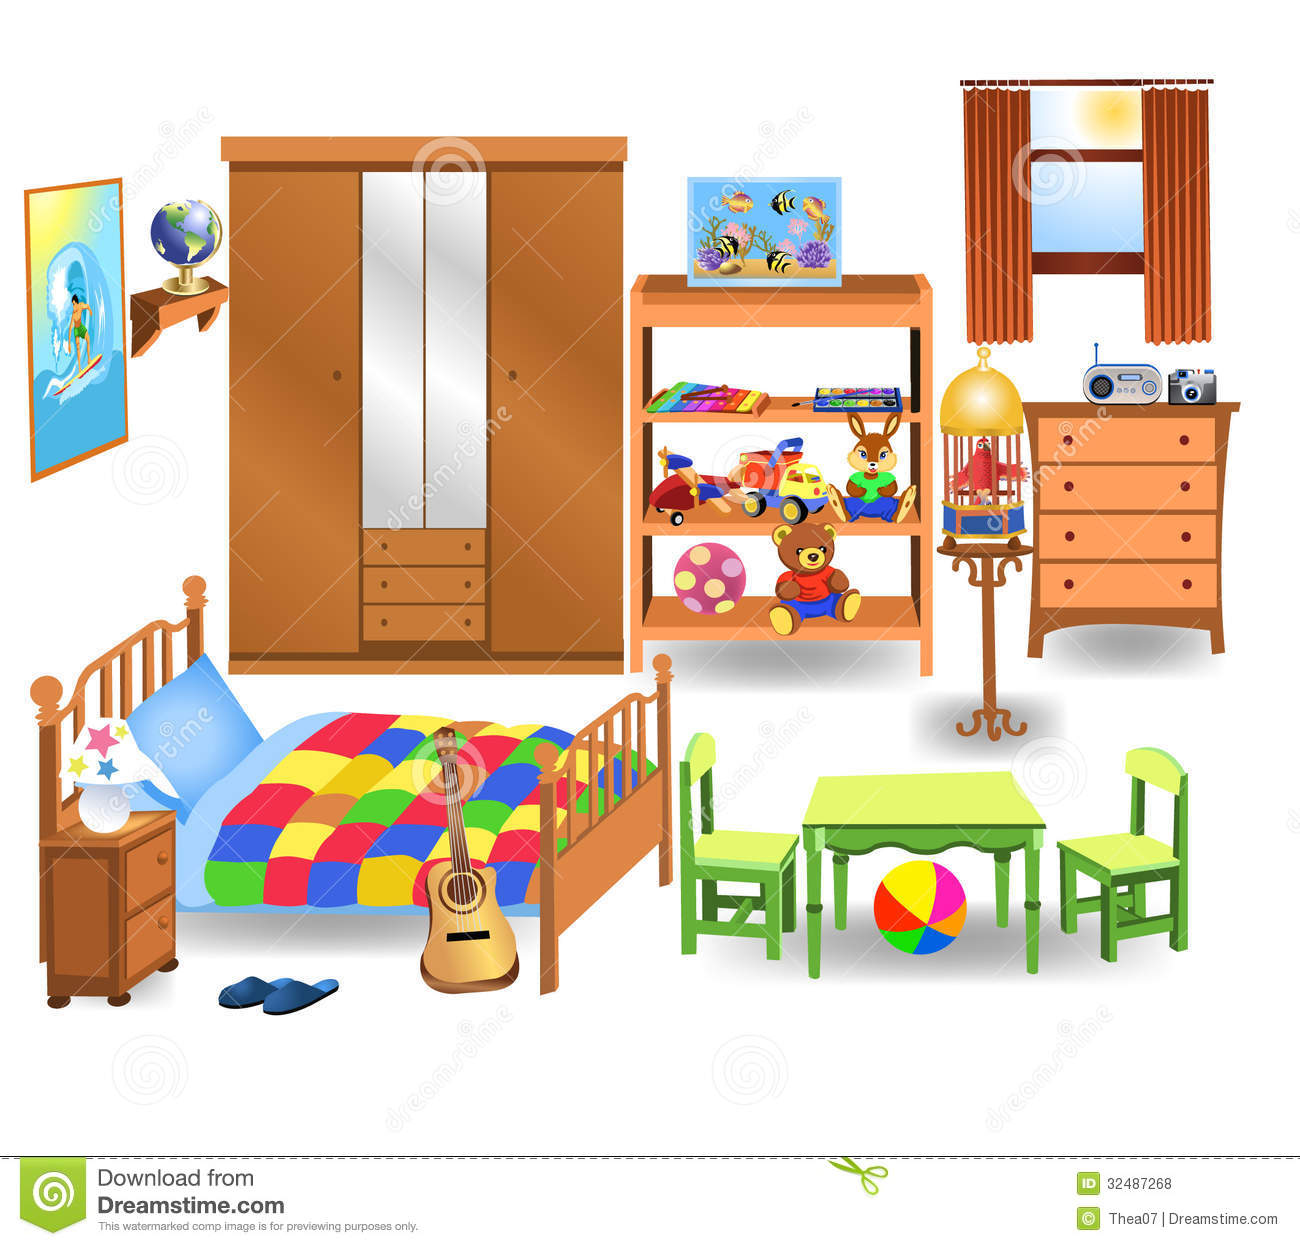 Bedroom clipart clipart panda free clipart images for House furniture pictures